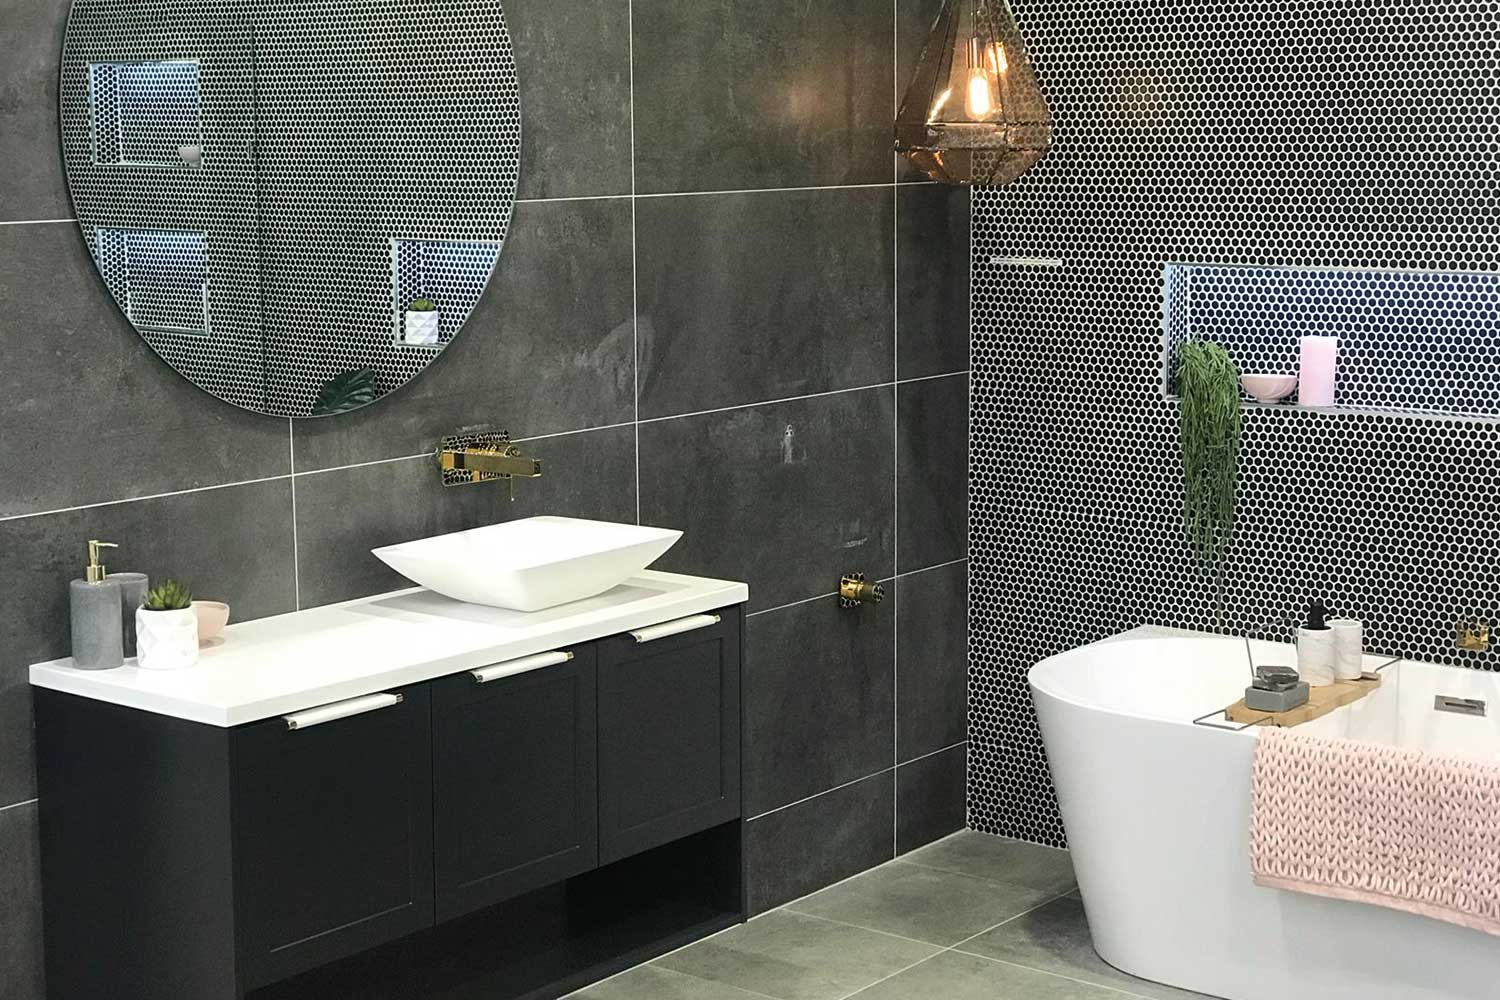 The latest modern bathroom designs to add luxe on a budget